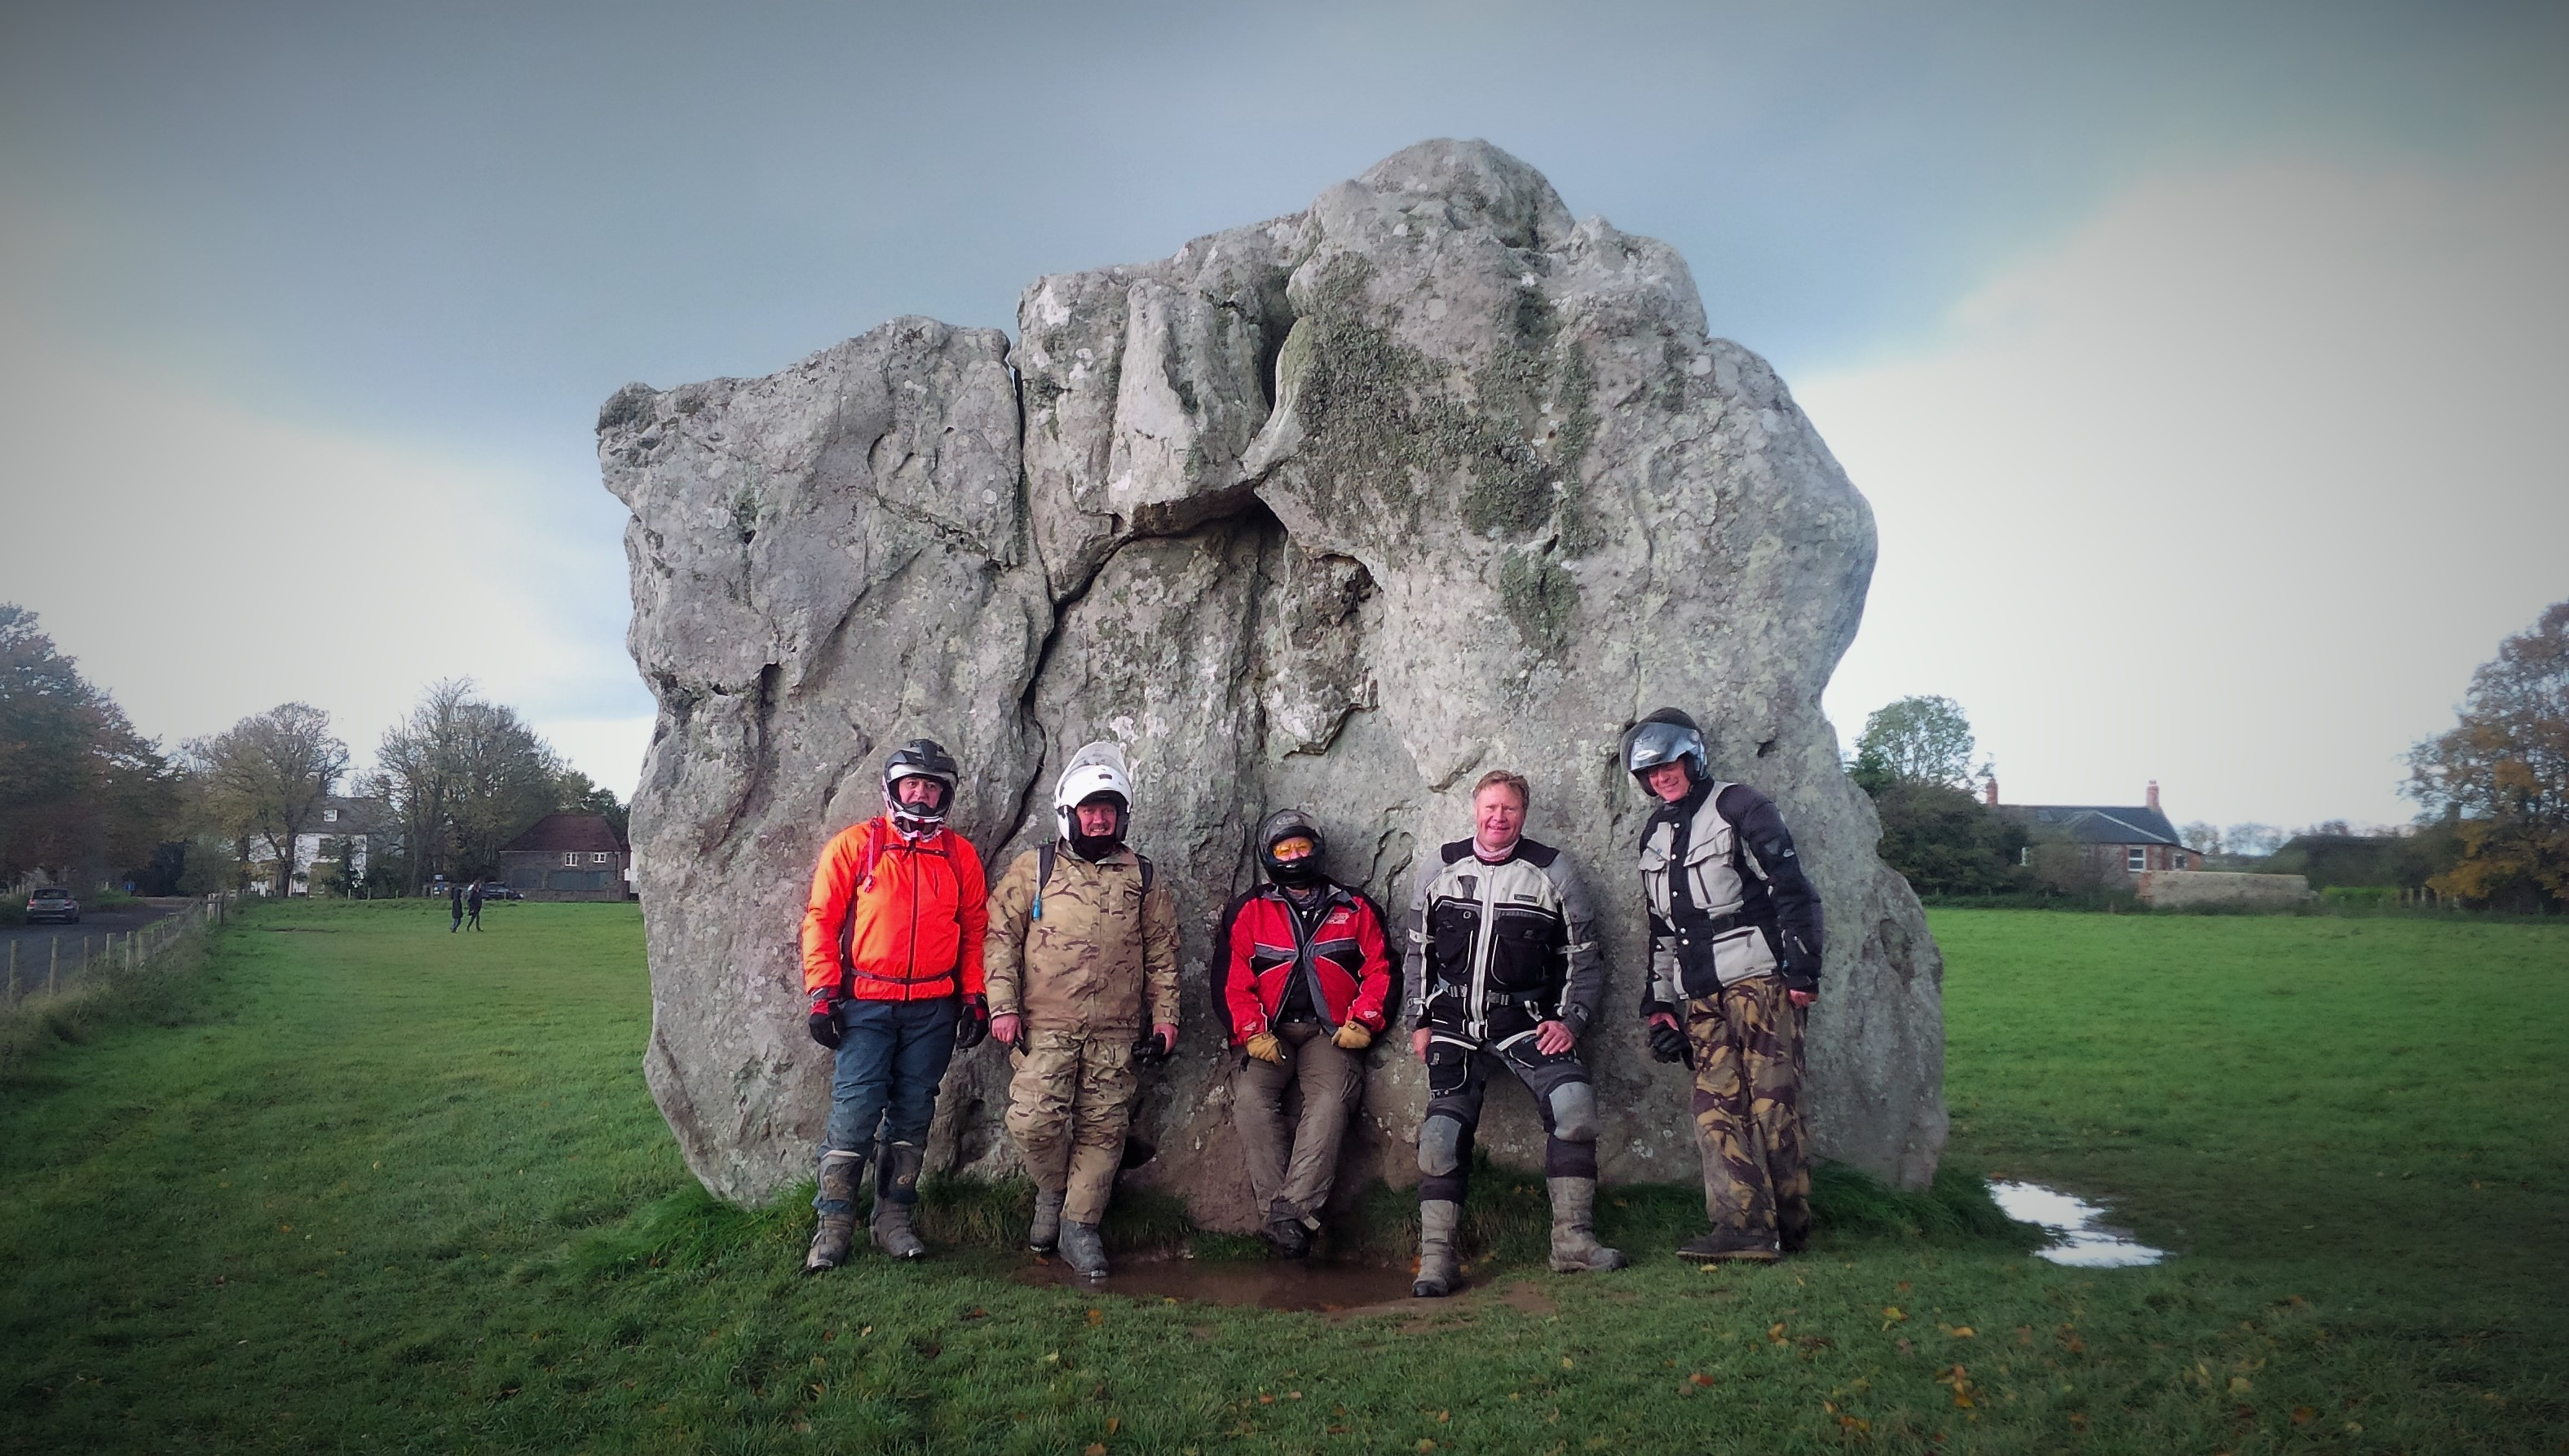 Avebury - Andrew Byatt, John Wedeman, Becky Burbidge, Keith Dobson, Keith Johnston